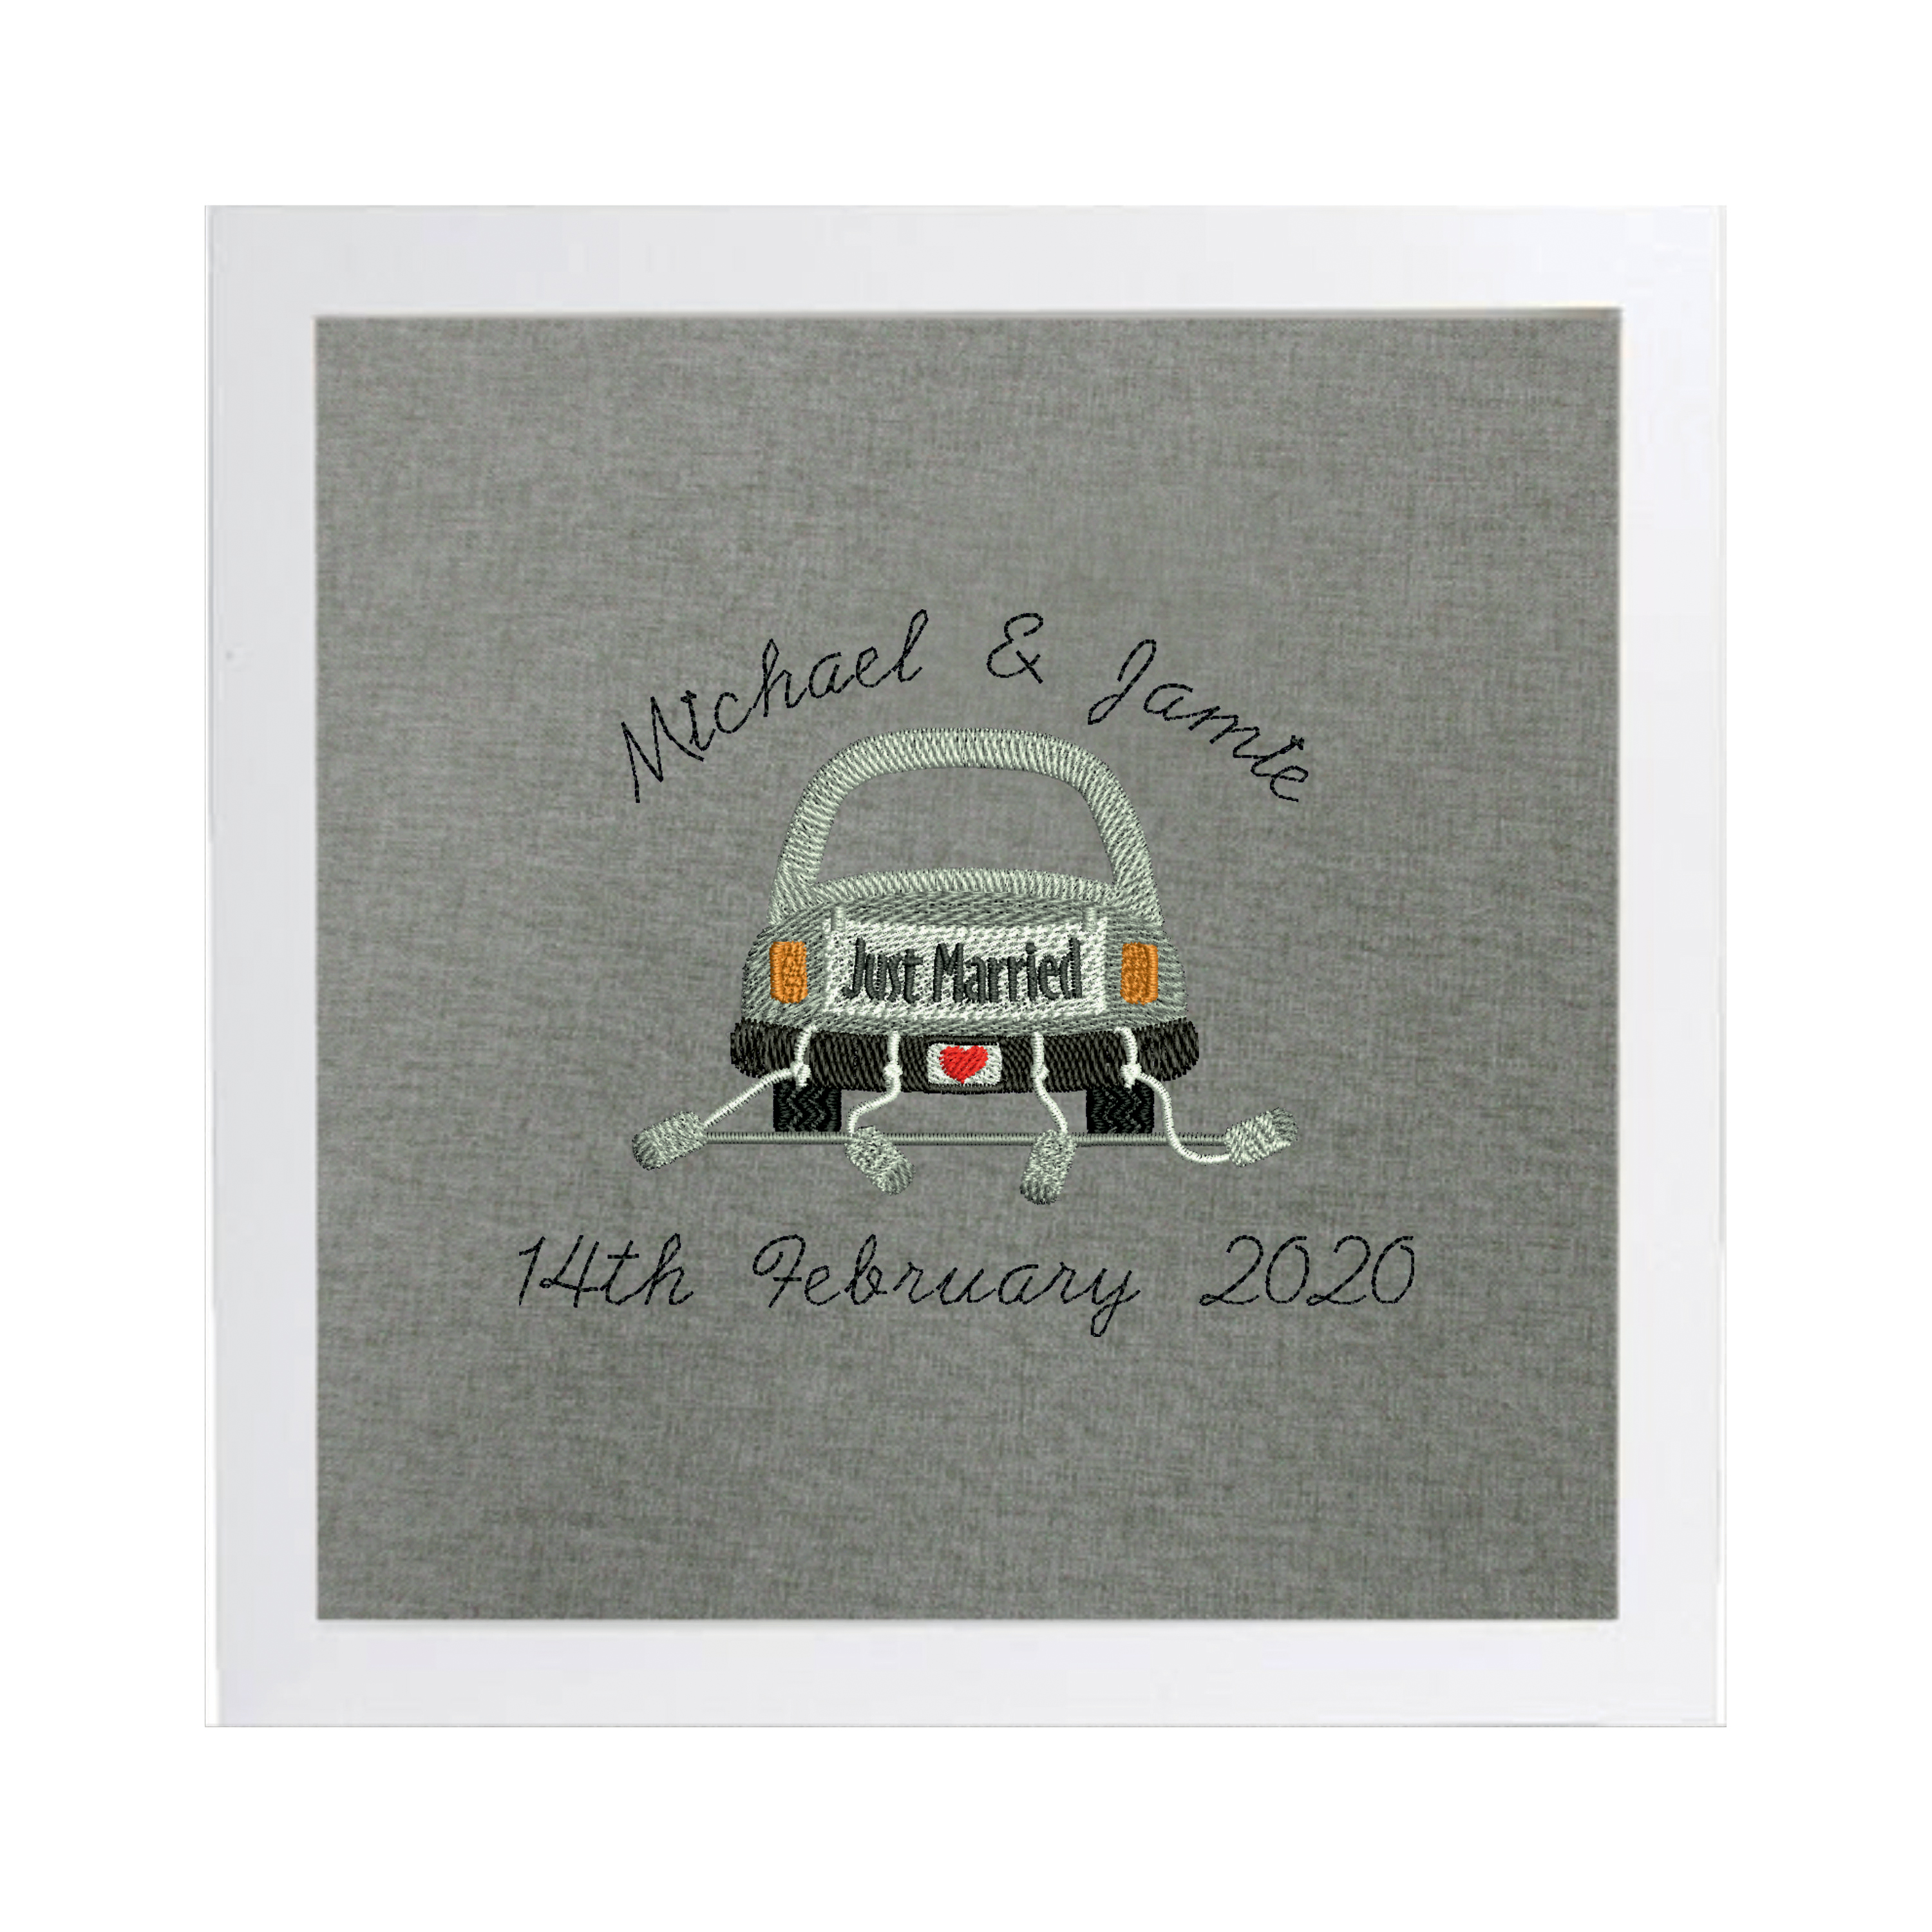 Personalised Embroidered Wedding Car Picture Gift The Cap Factory